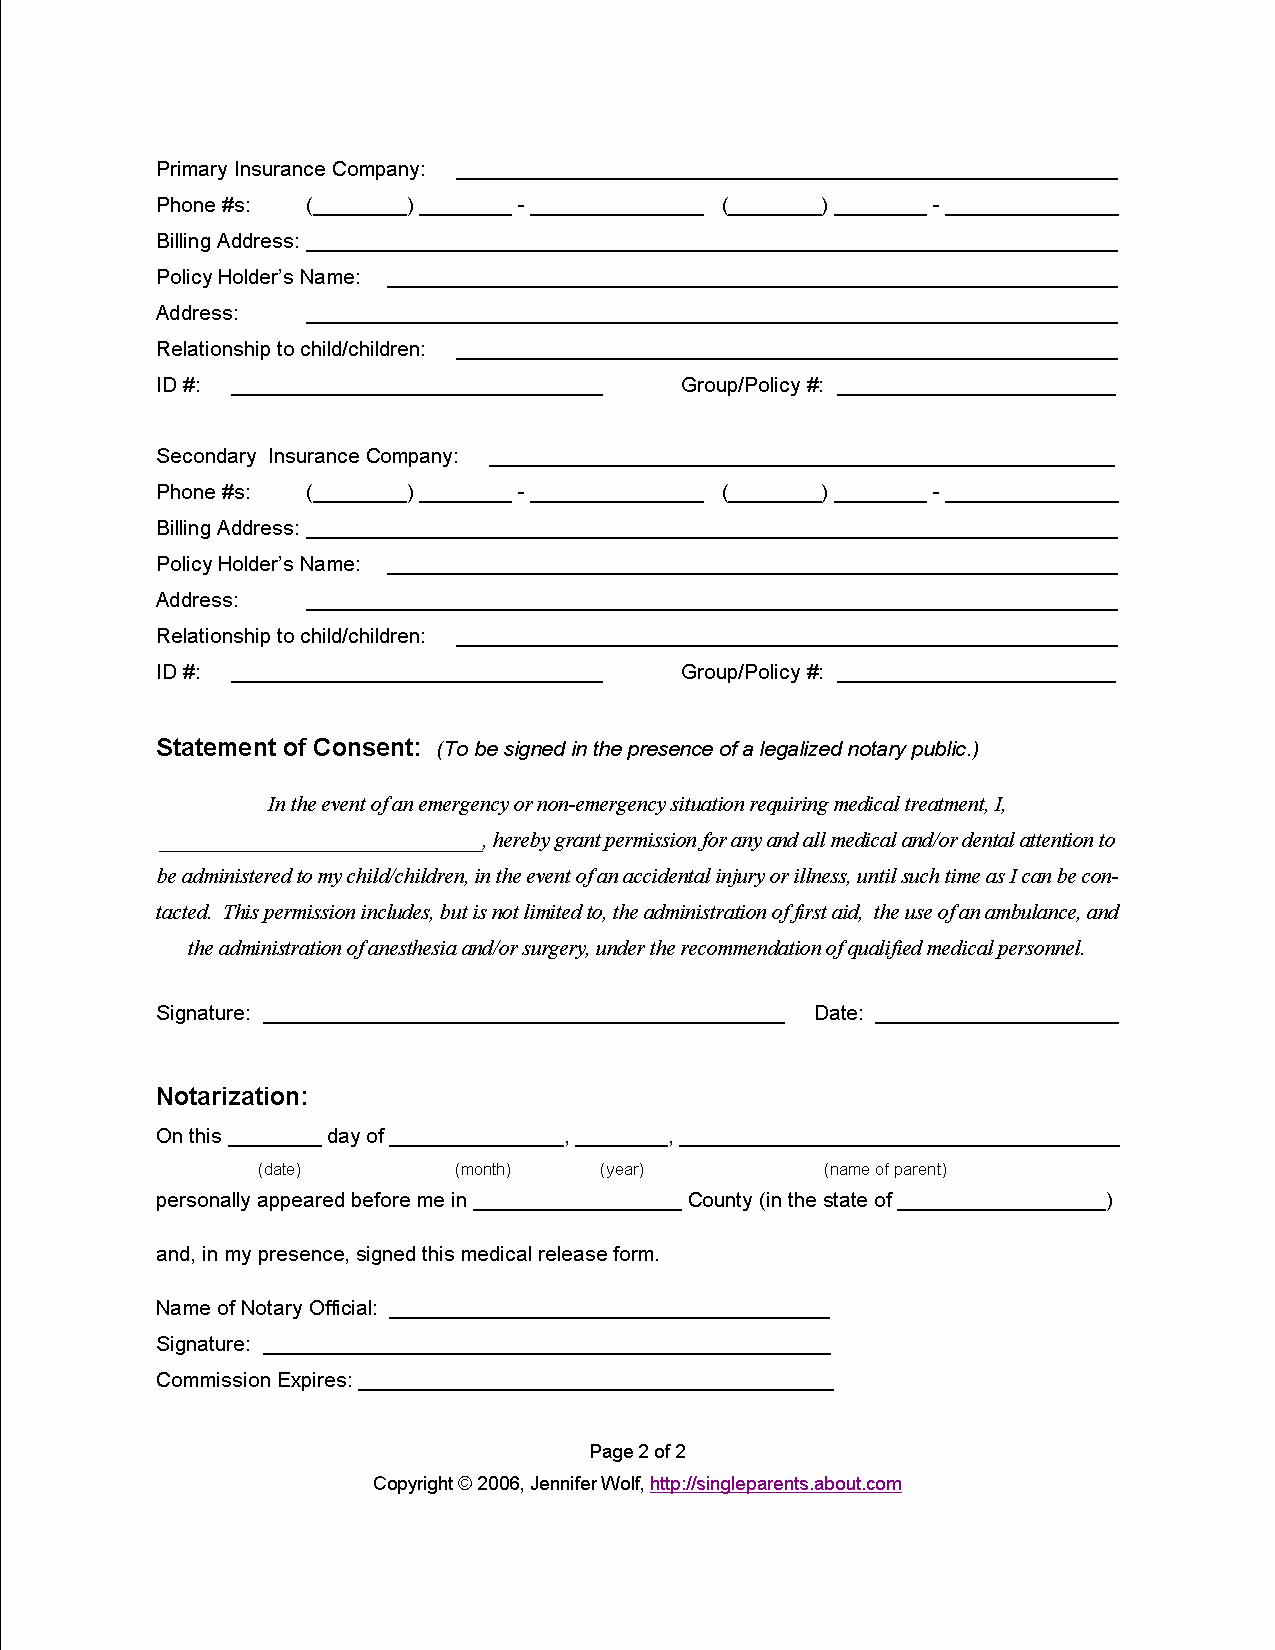 Free Printable Medical forms Beautiful Do You Have A Medical Release form for Your Kids